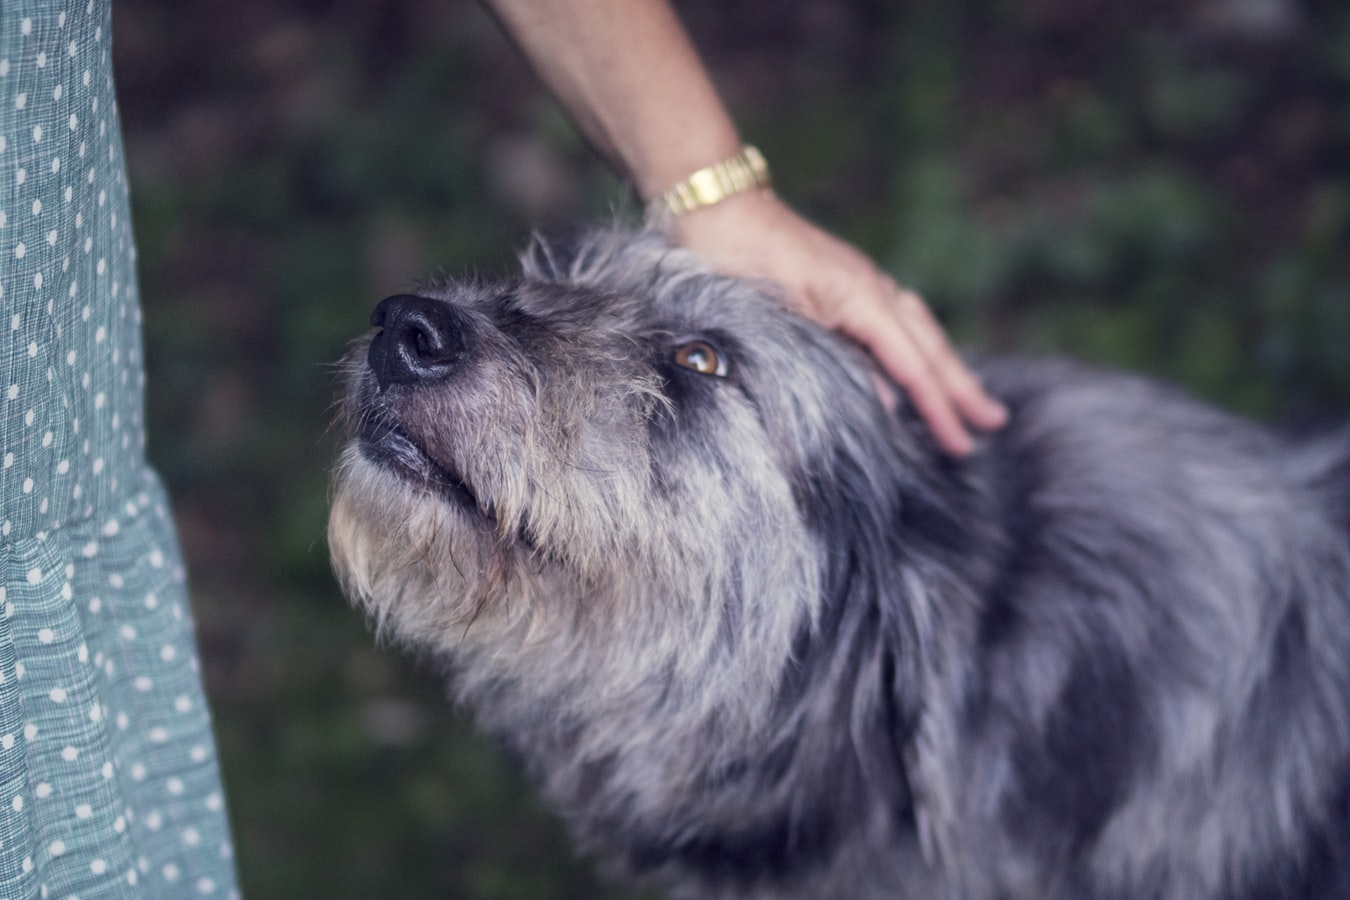 How to Pet a Dog, Build Trust Between You and Your Dog